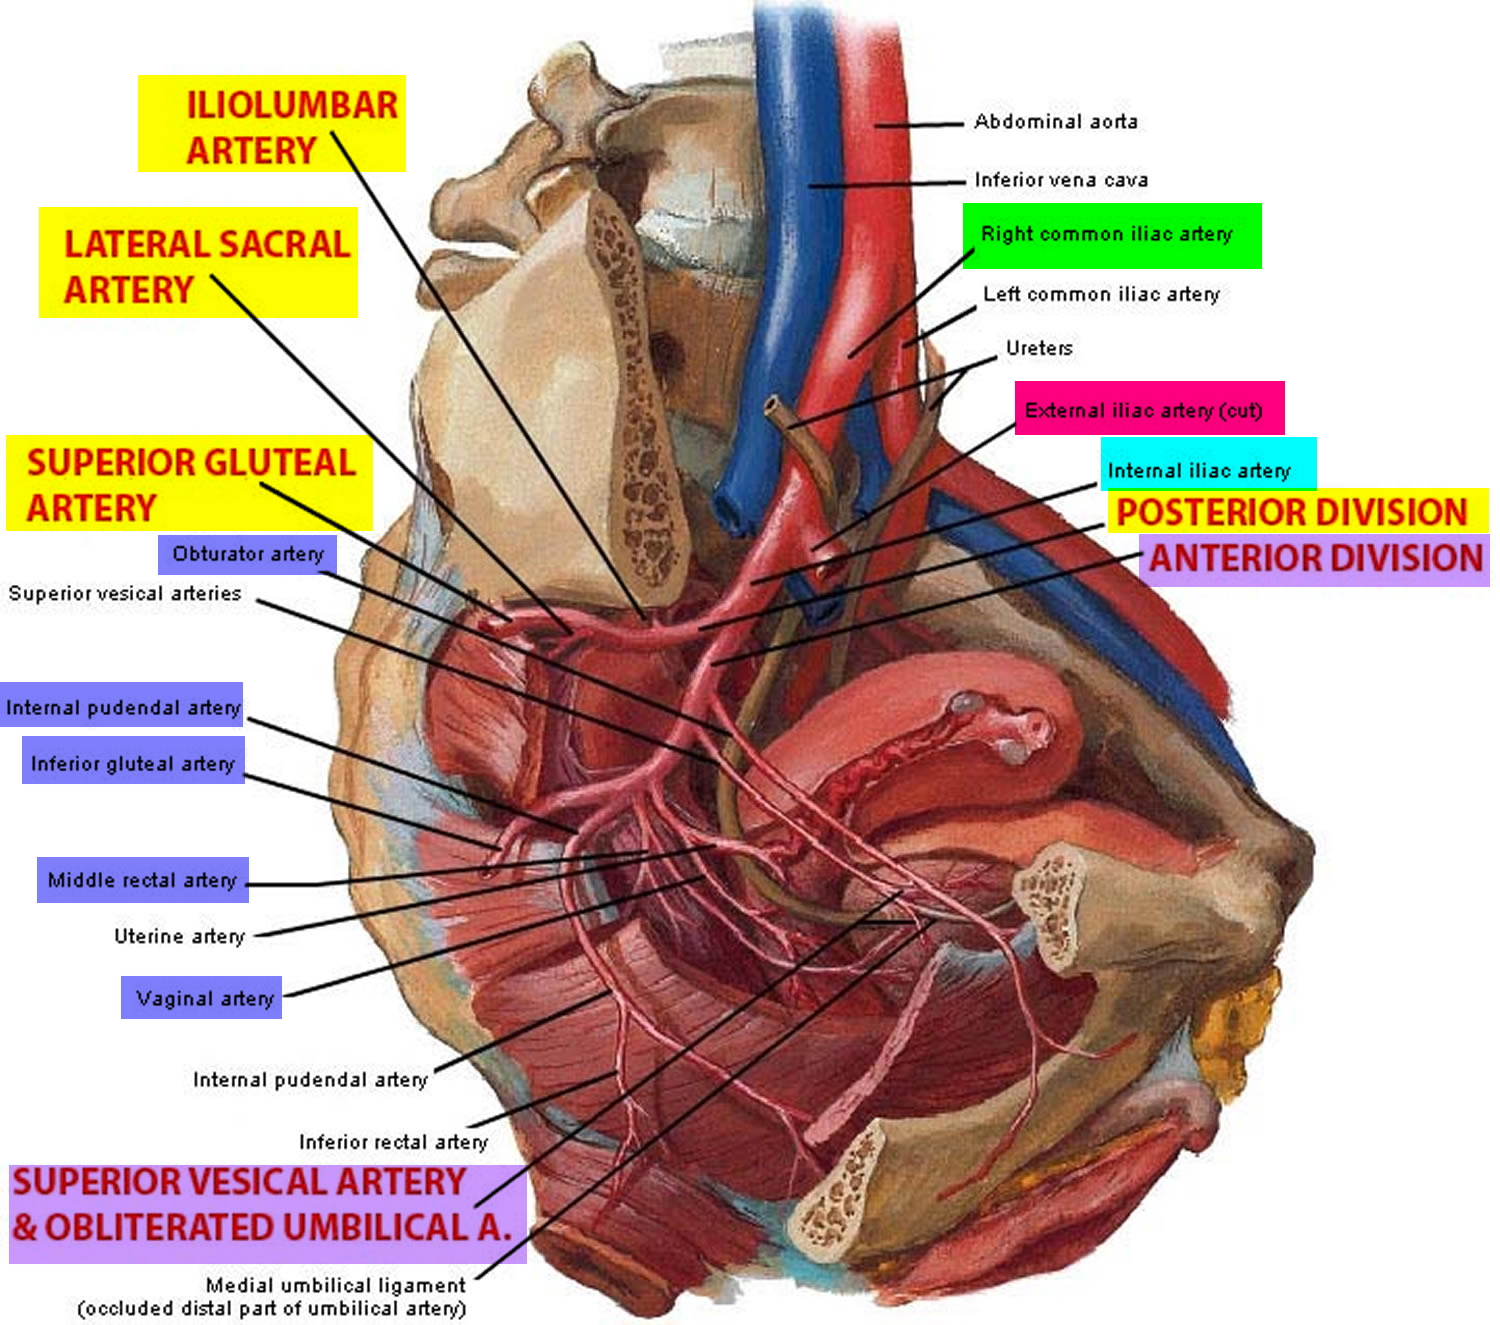 common iliac artery branches